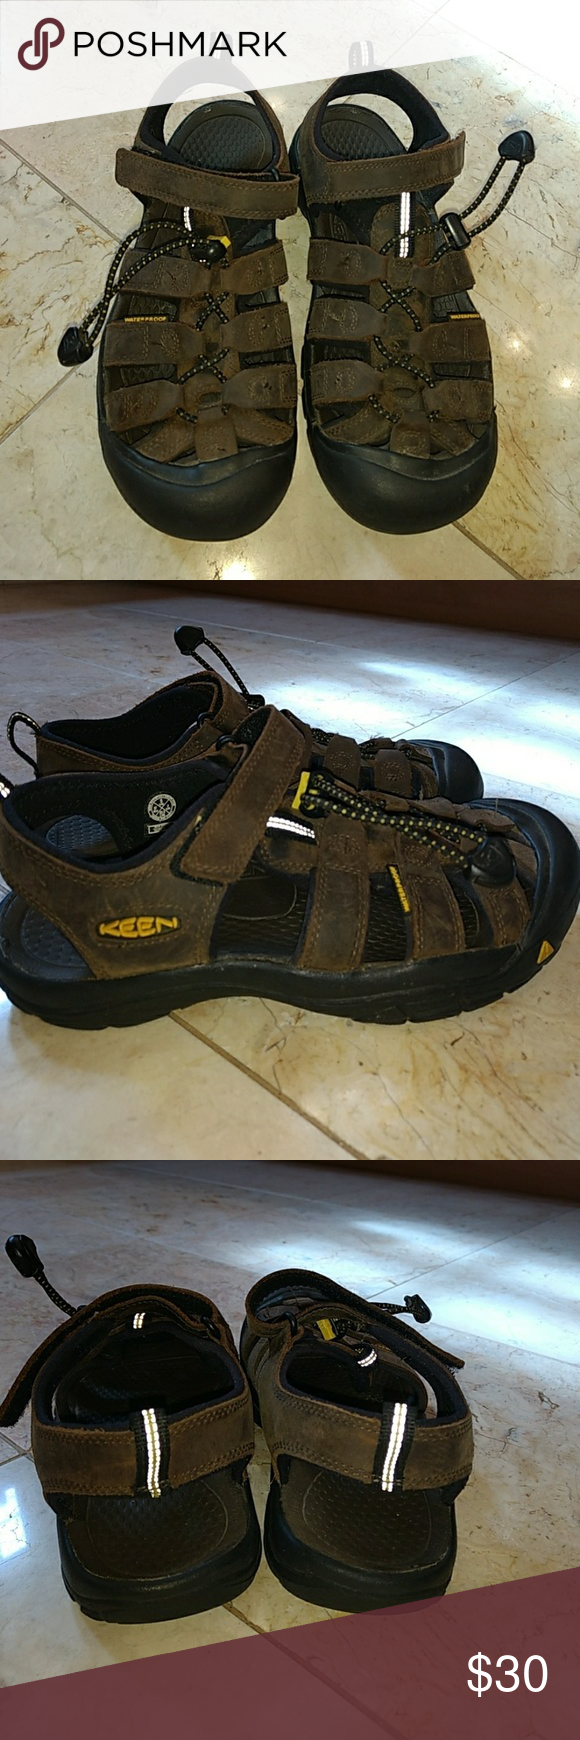 60fd171ba137 Keen Kids Newport premium sandal These brown leather sandals are water  resistant. Secure fit lace capture system with hook and loop cl…